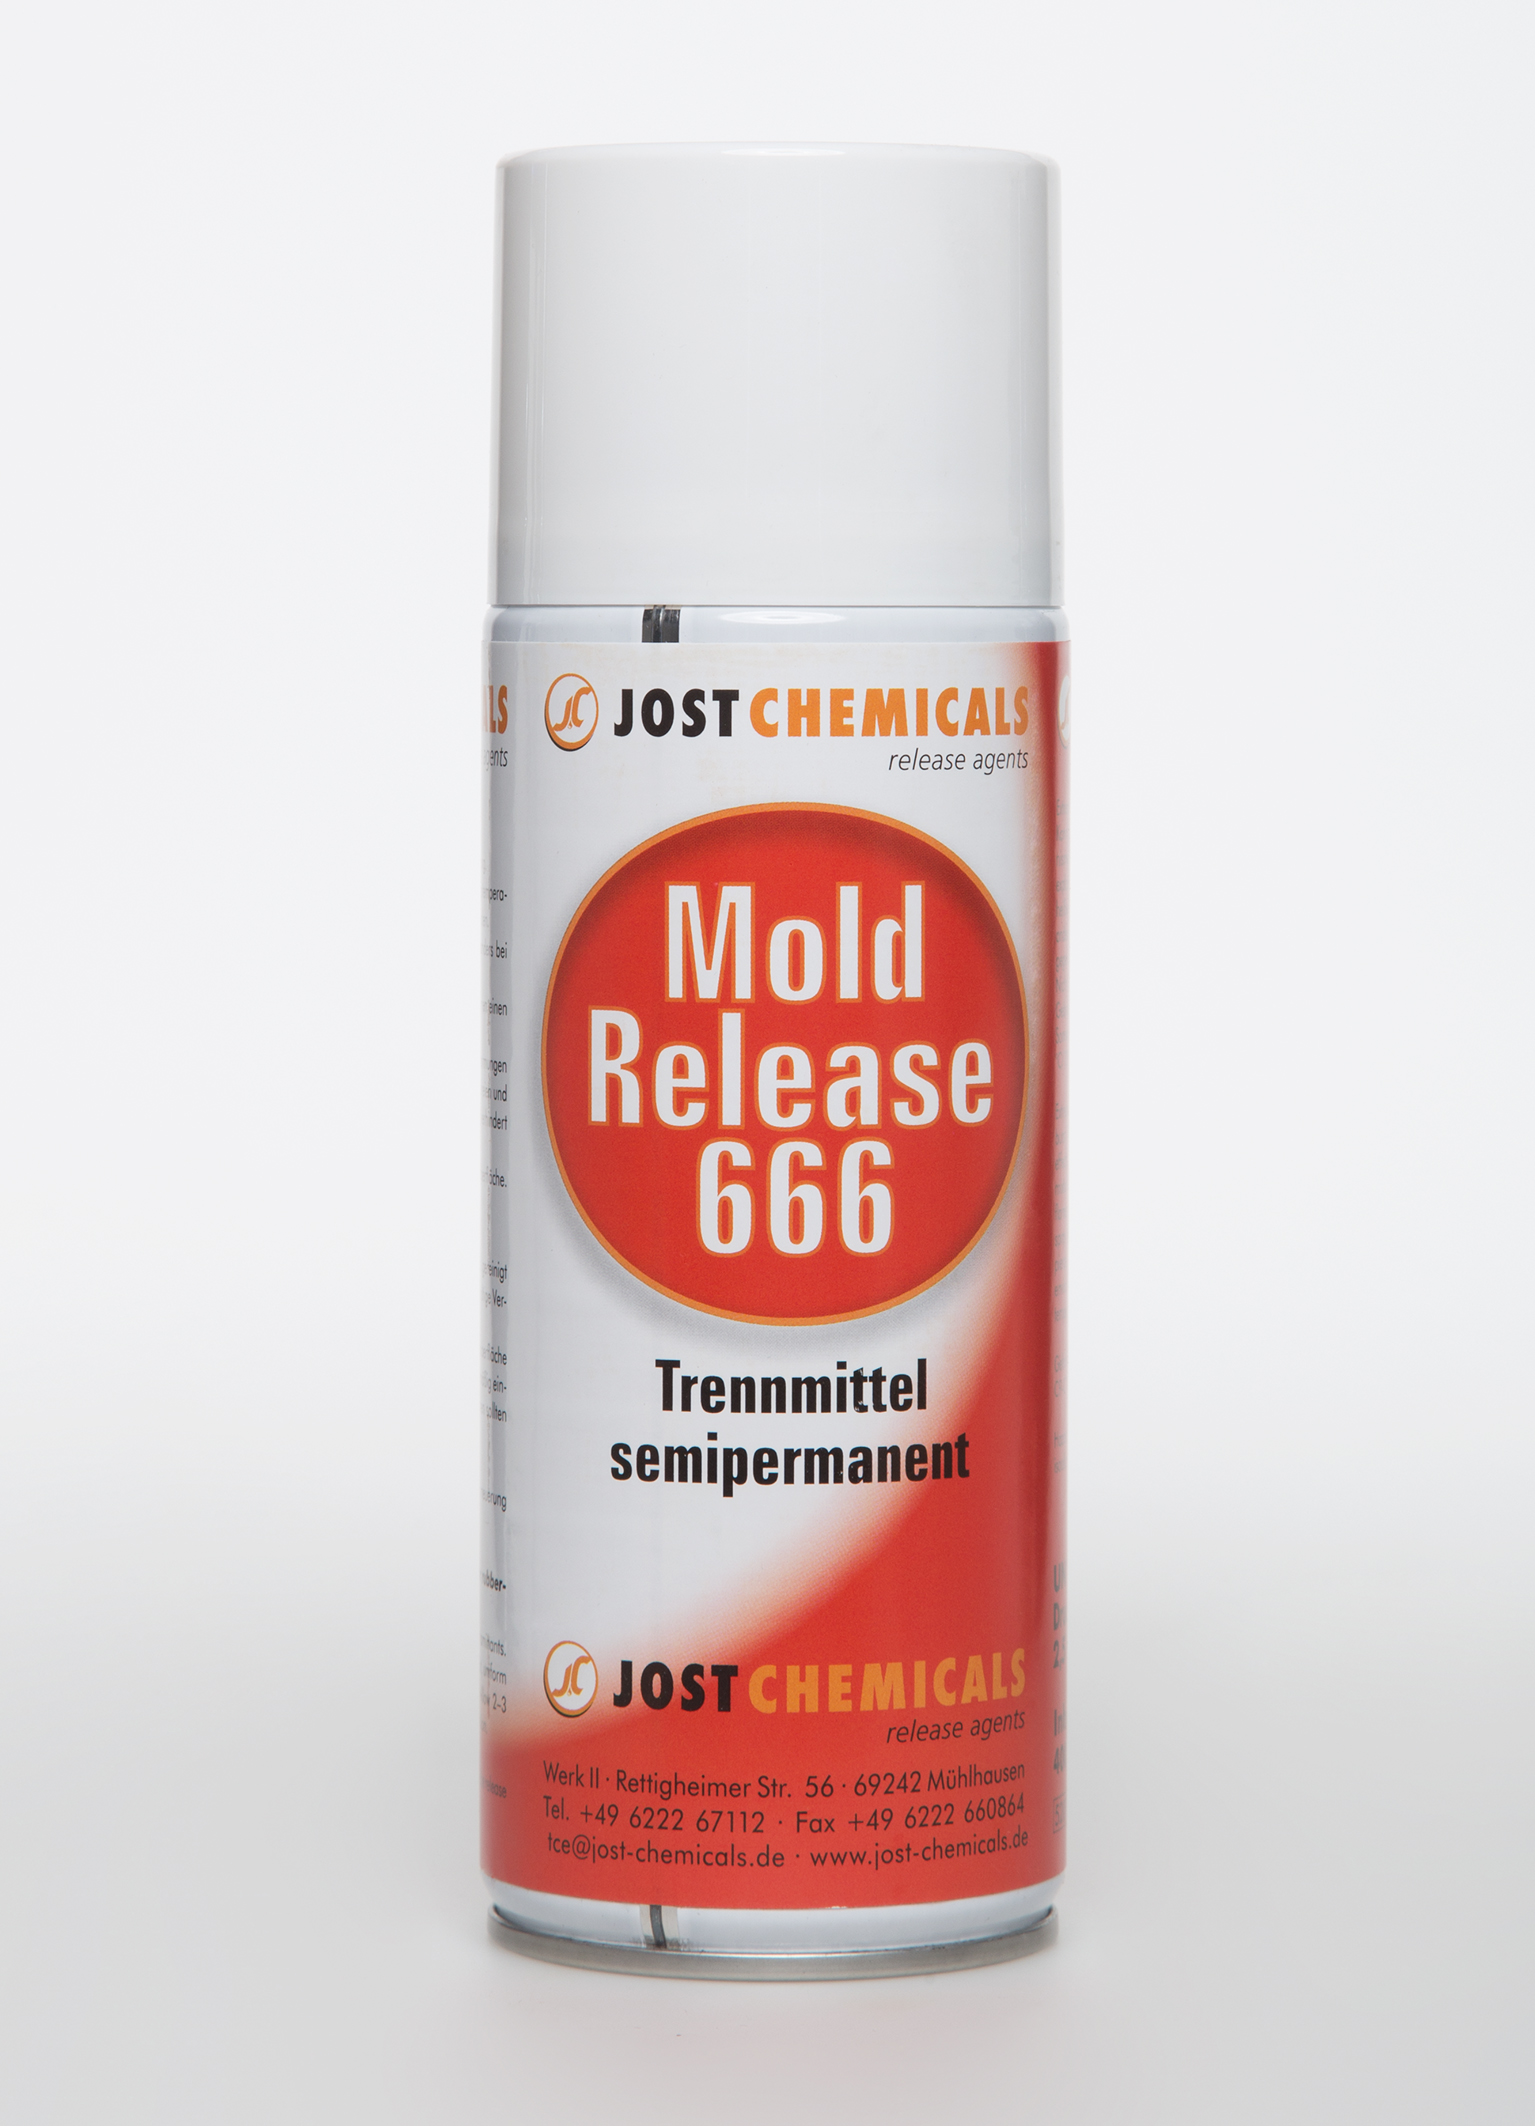 Mold Release 666 - Trennmittel